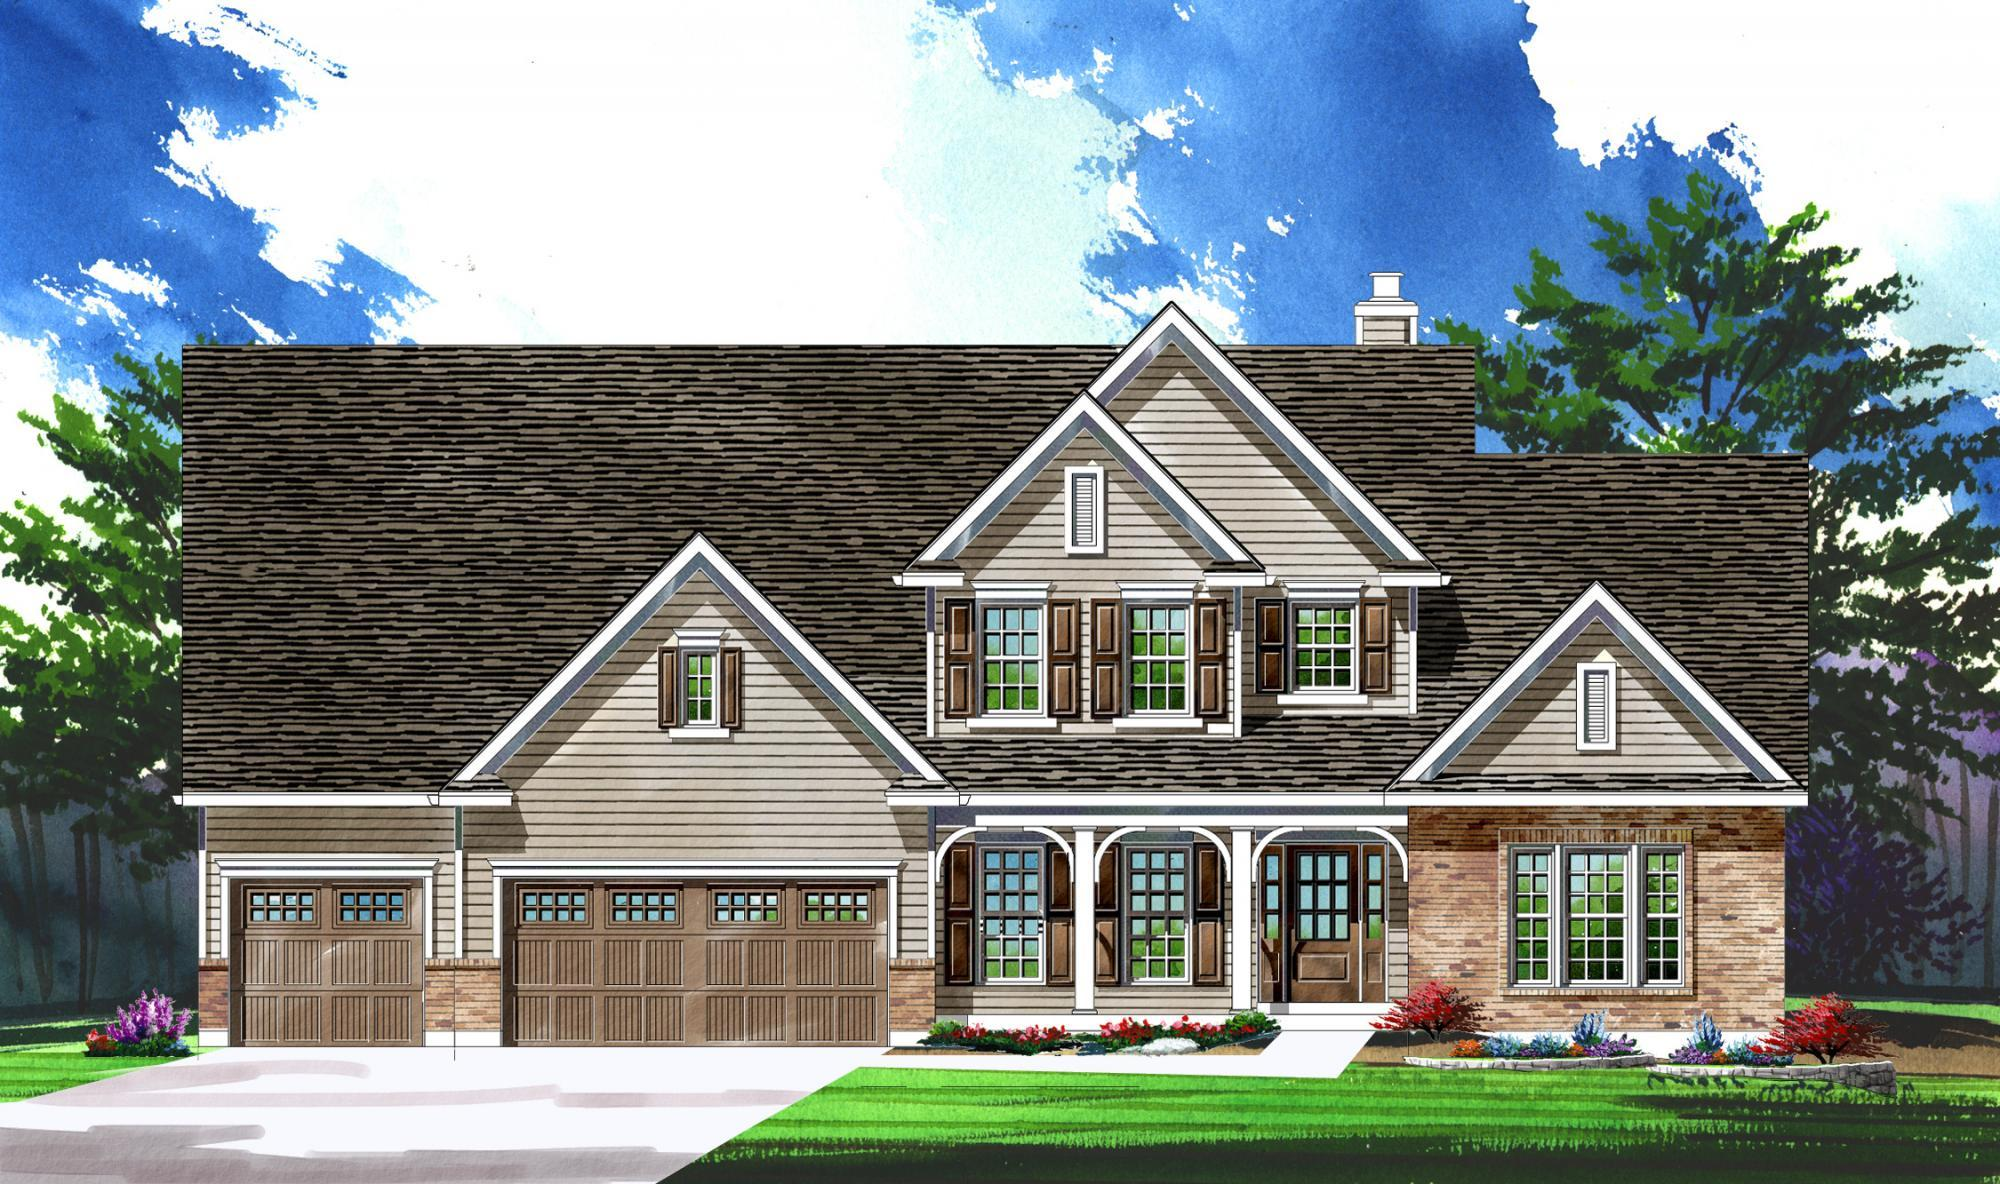 Single Family for Active at Warwick On White Road - Parkview Ii - Warwick 1168 Whetherly Landing Chesterfield, Missouri 63017 United States